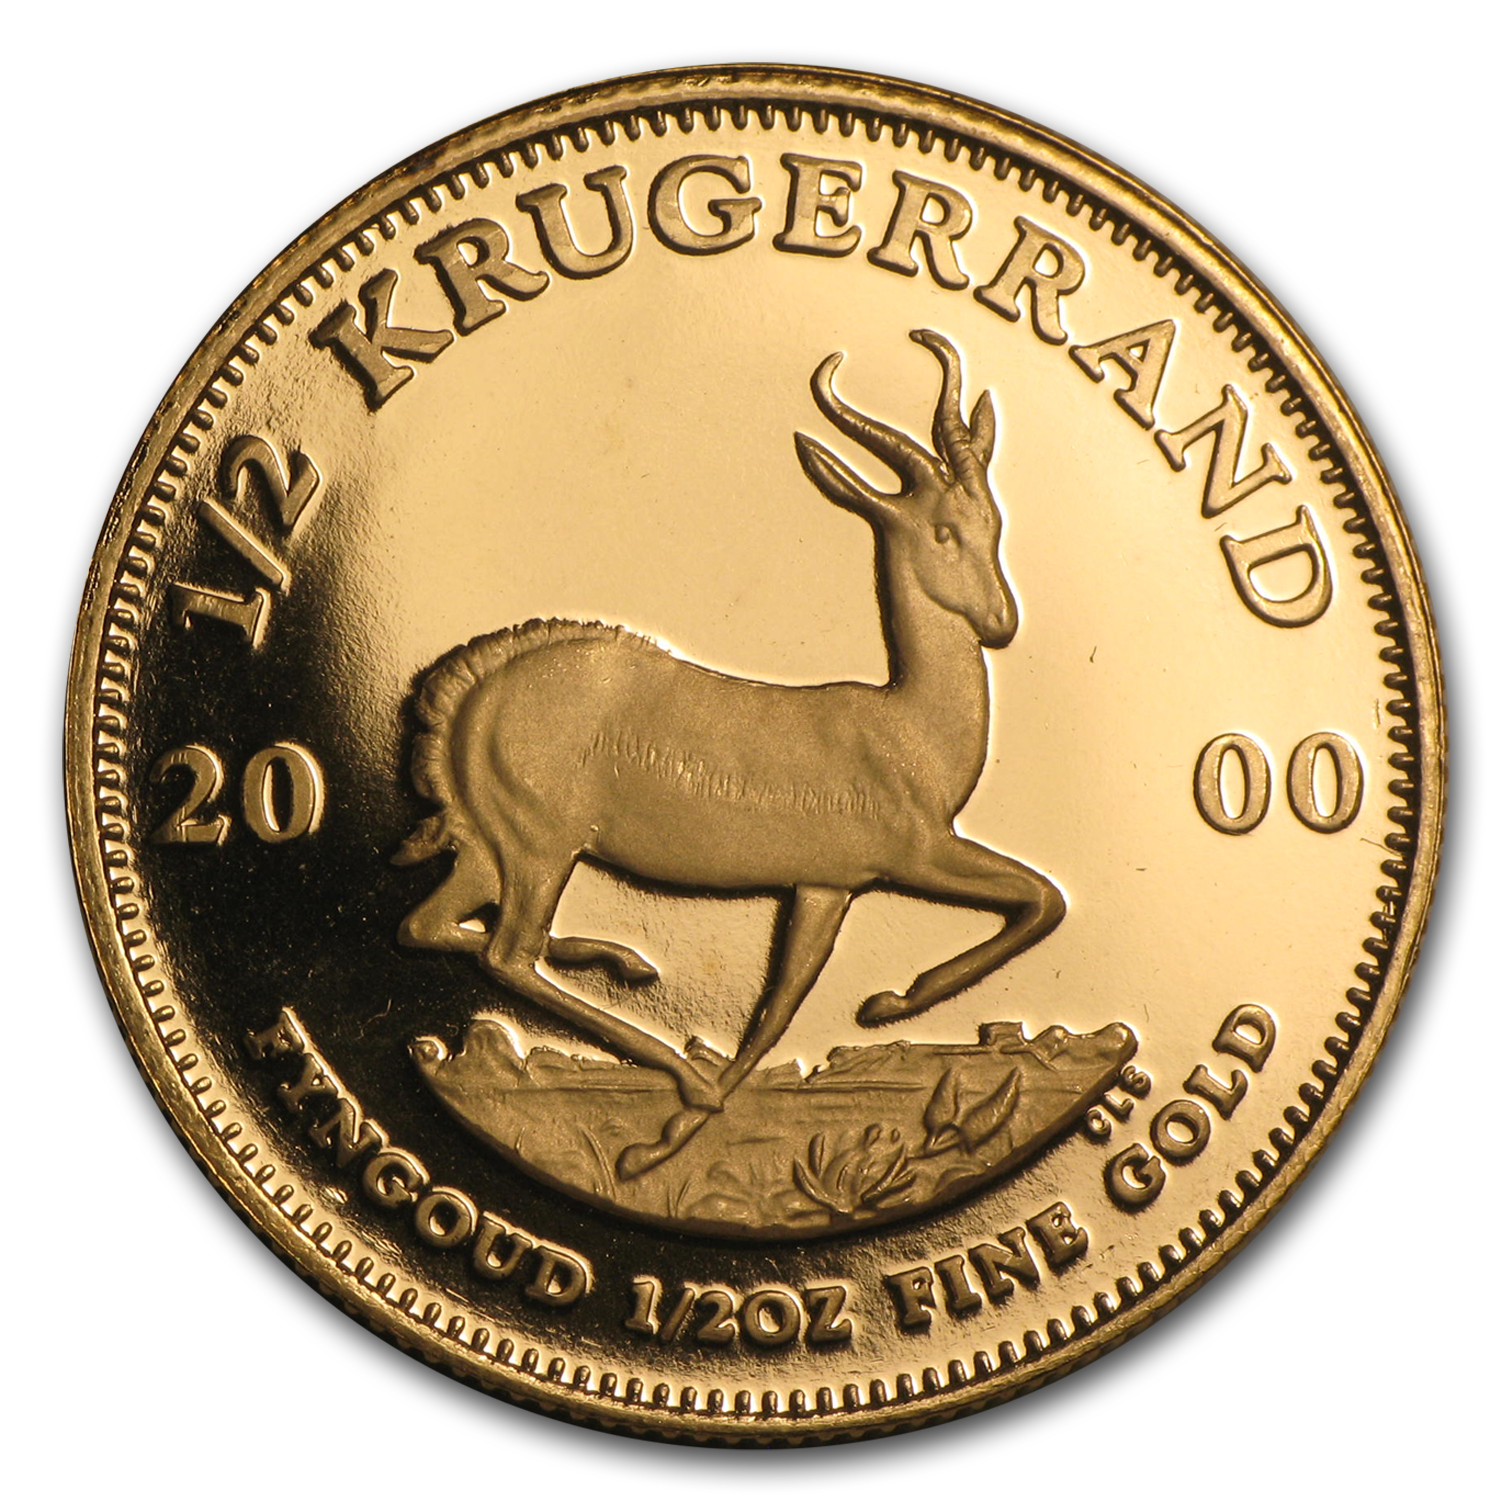 2000 South Africa 1/2 oz Proof Gold Krugerrand